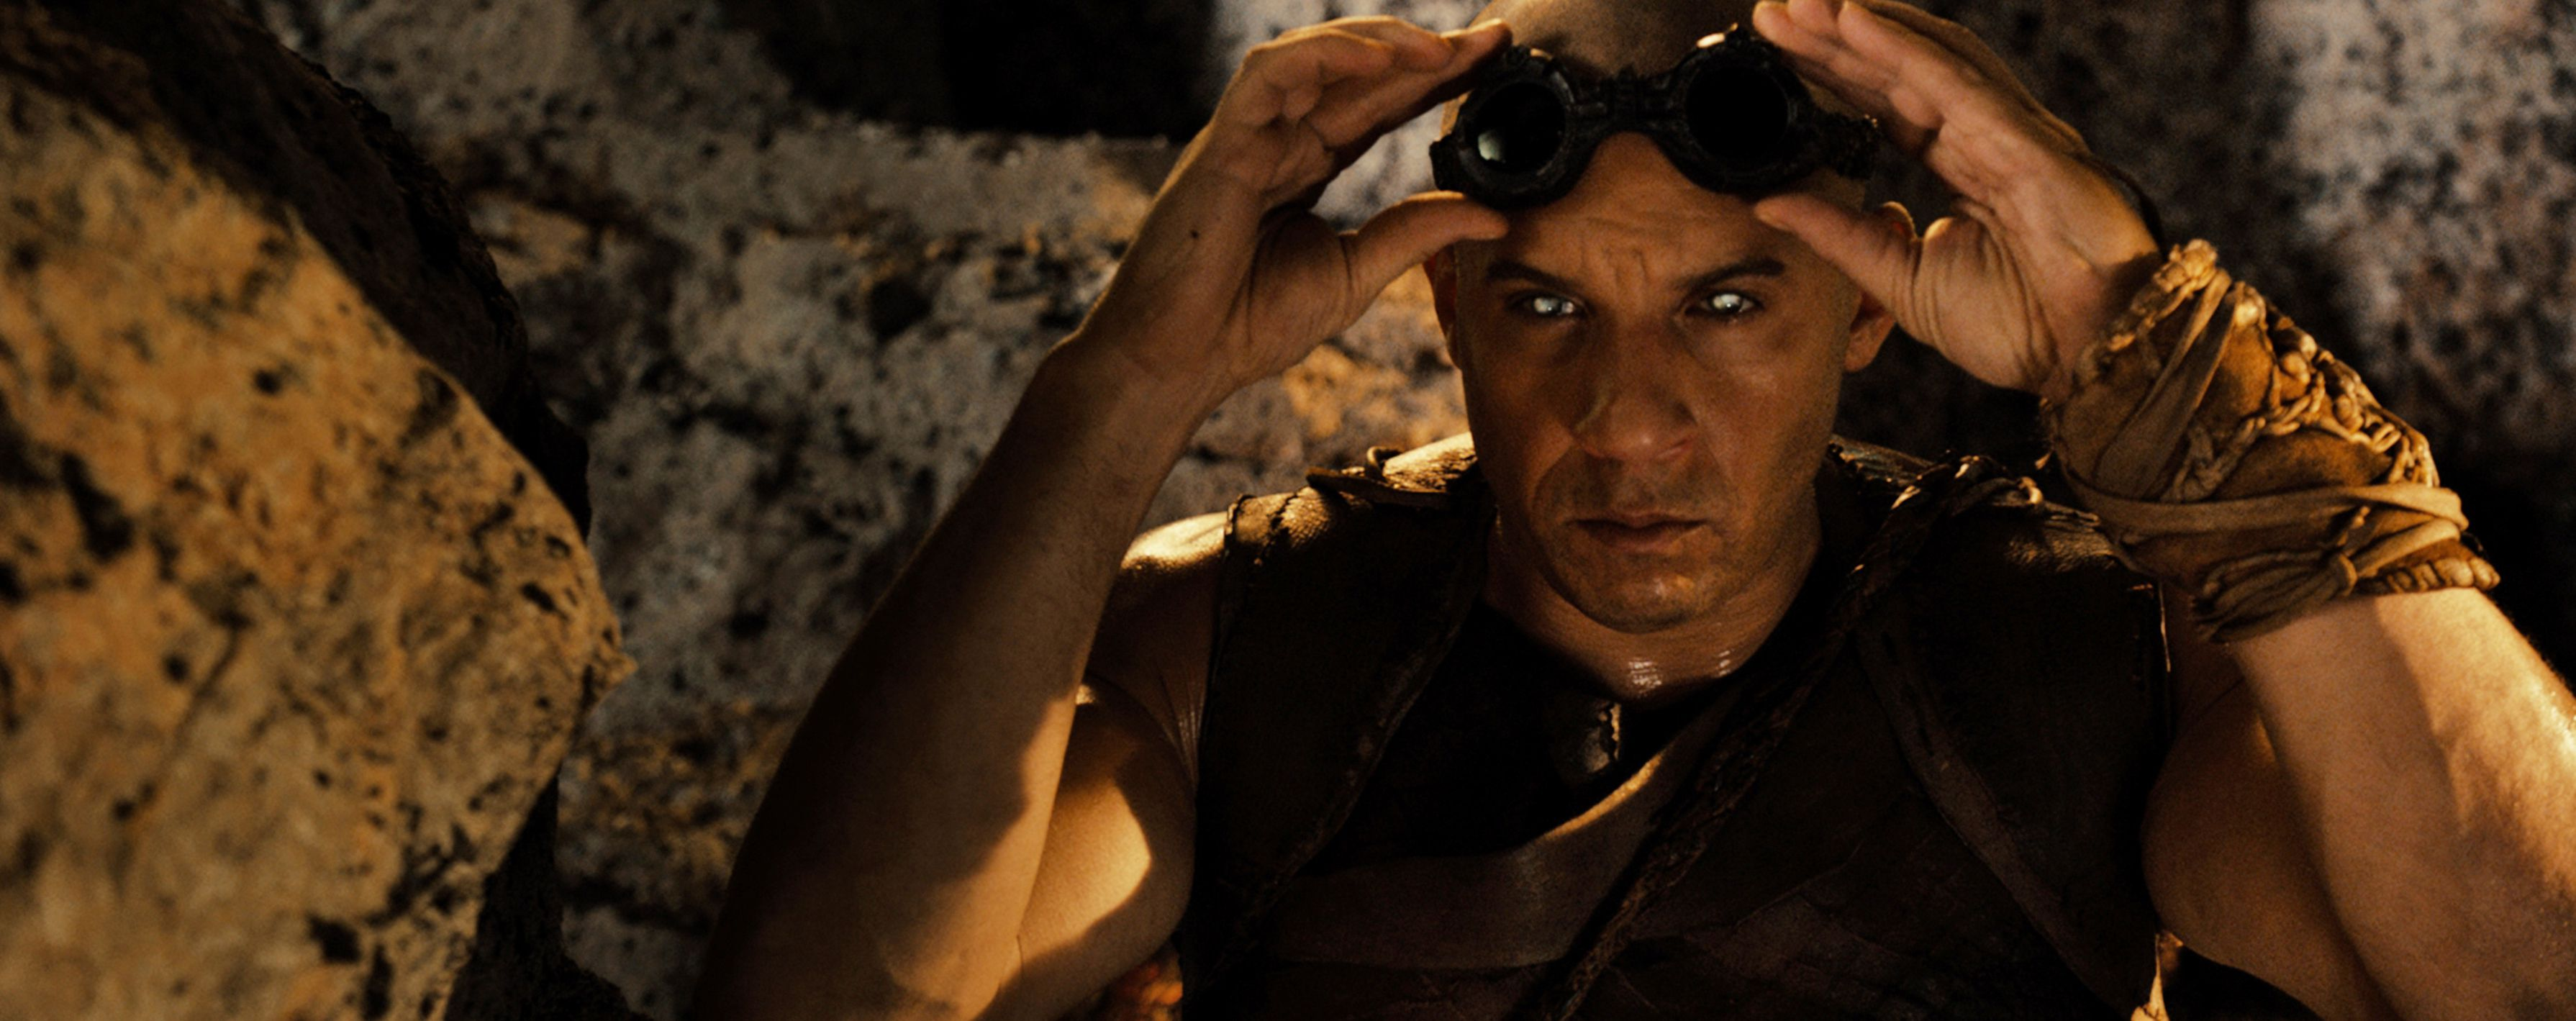 An image from Riddick